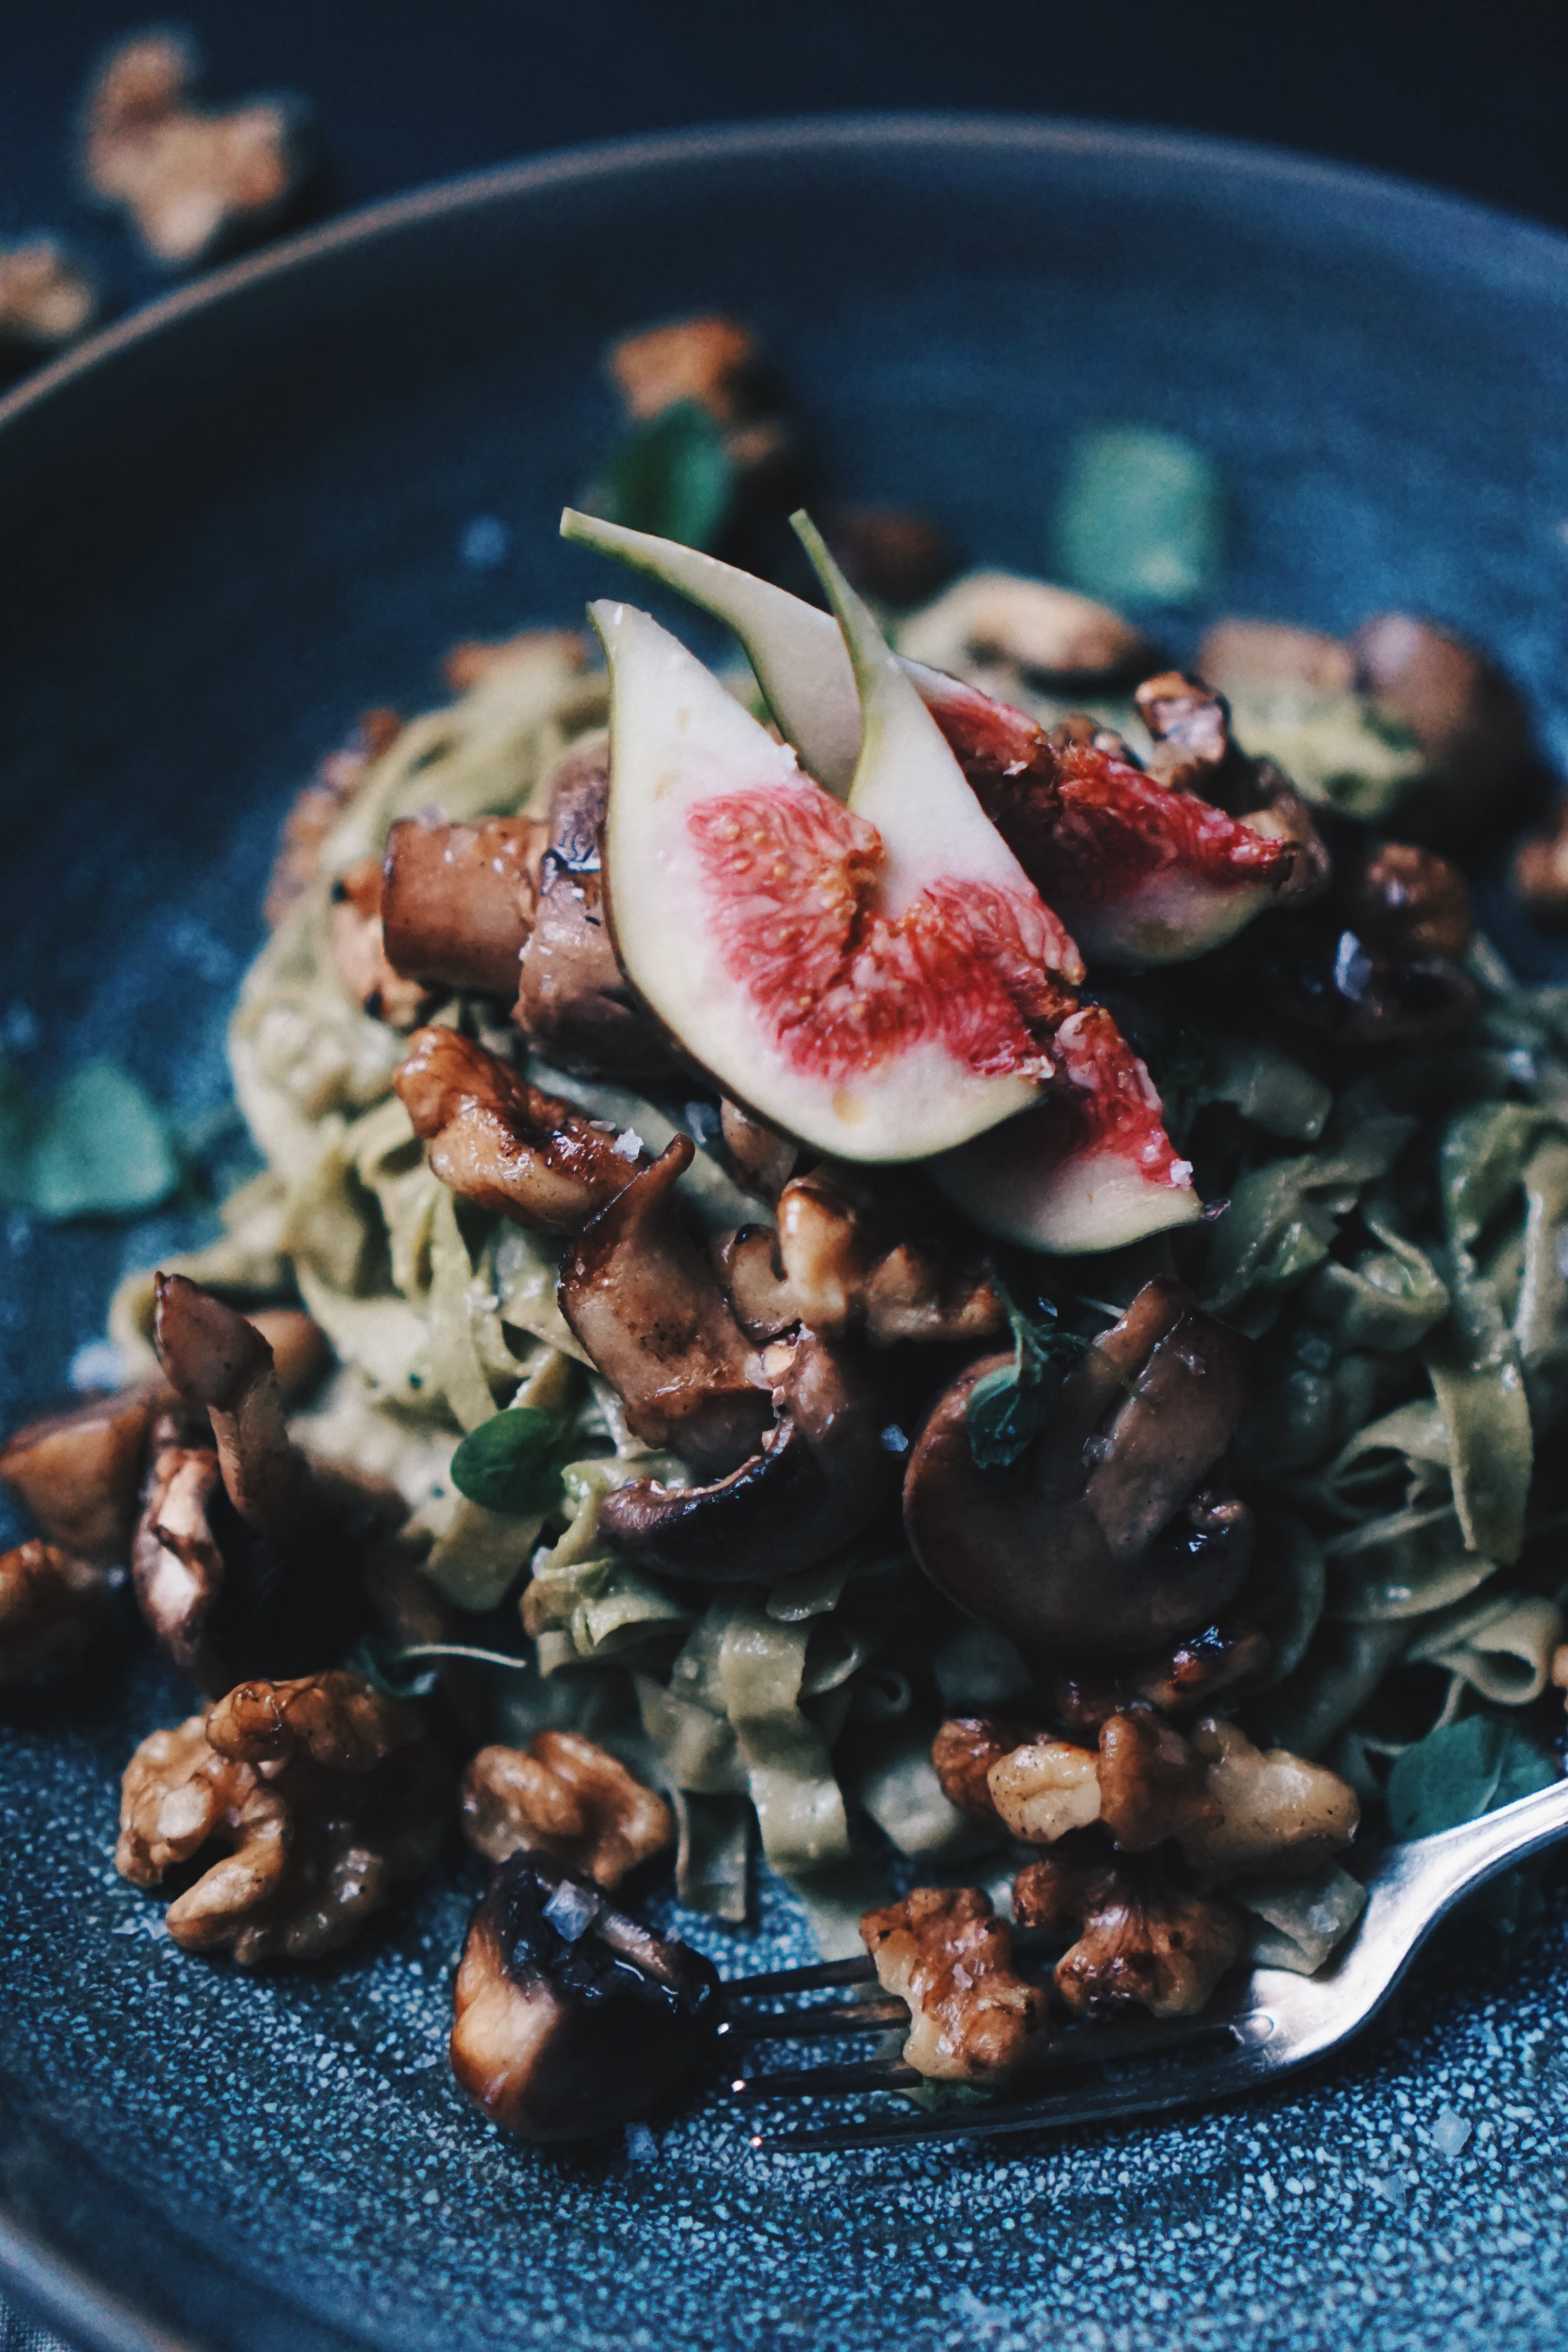 Figs, so tasty and perfect to decorate anything from sandwiches to pastas!